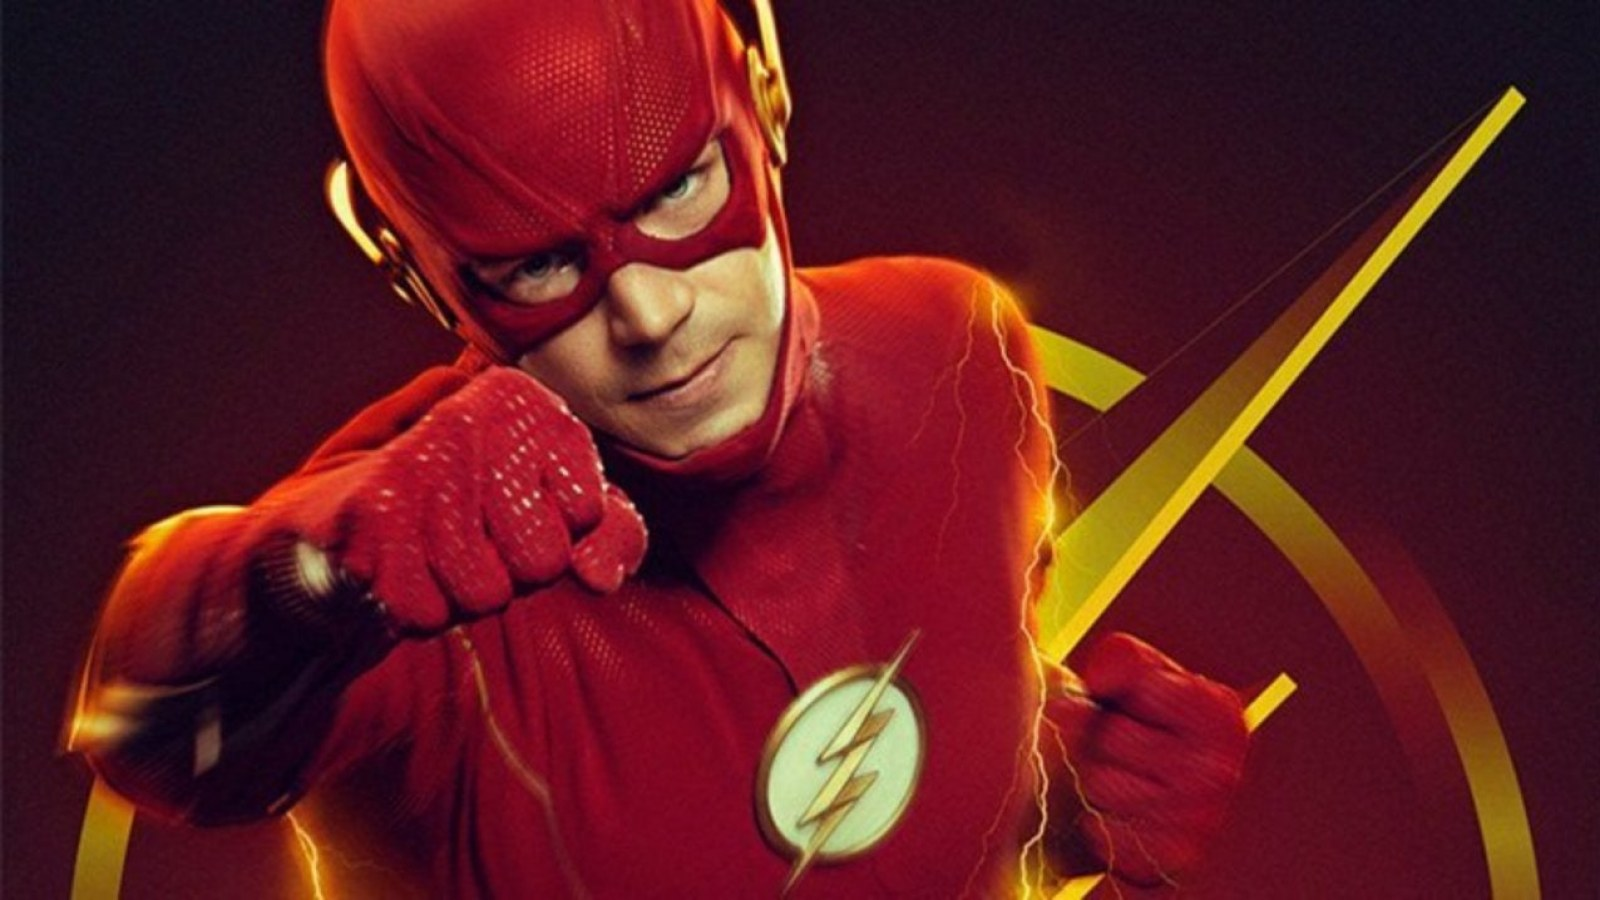 The Flash Season 6 Spoilers Who Will Be The Main Villains Of The